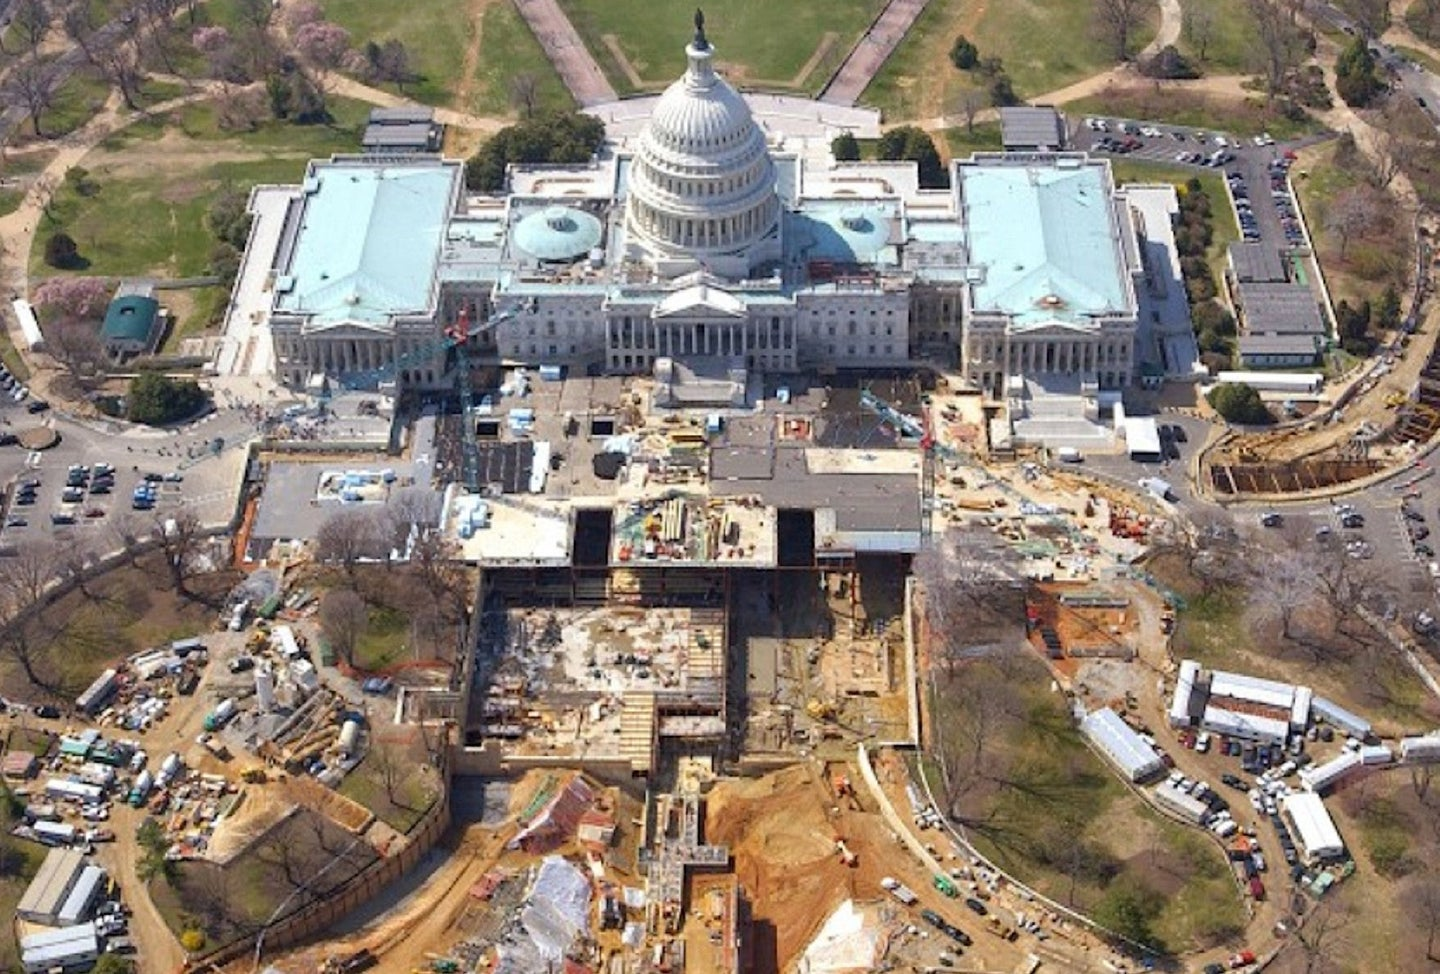 Capitol Hill aerial view with construction vehicles and work